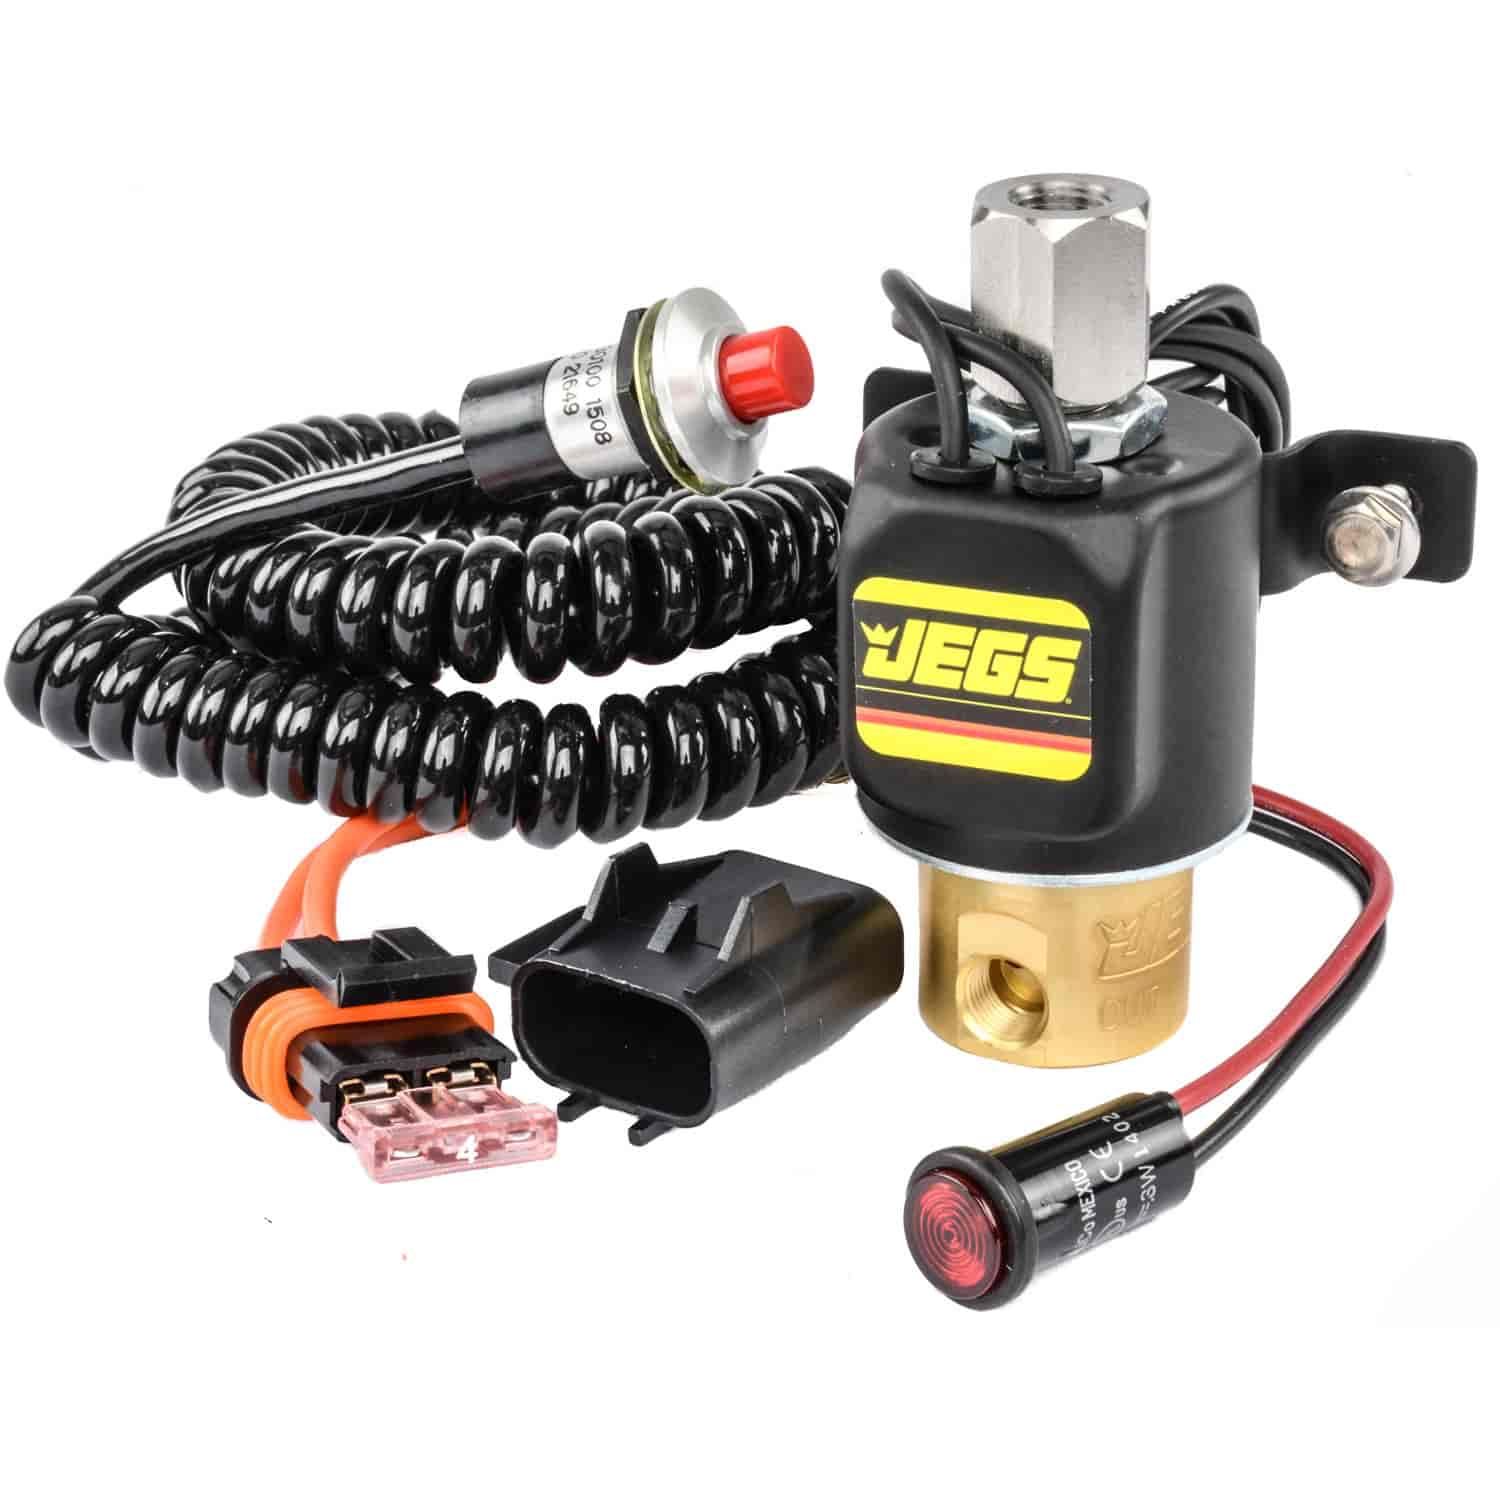 JEGS Performance Products 63002 - JEGS Stage Control Solenoid, Switch, Light and Fuse Kit